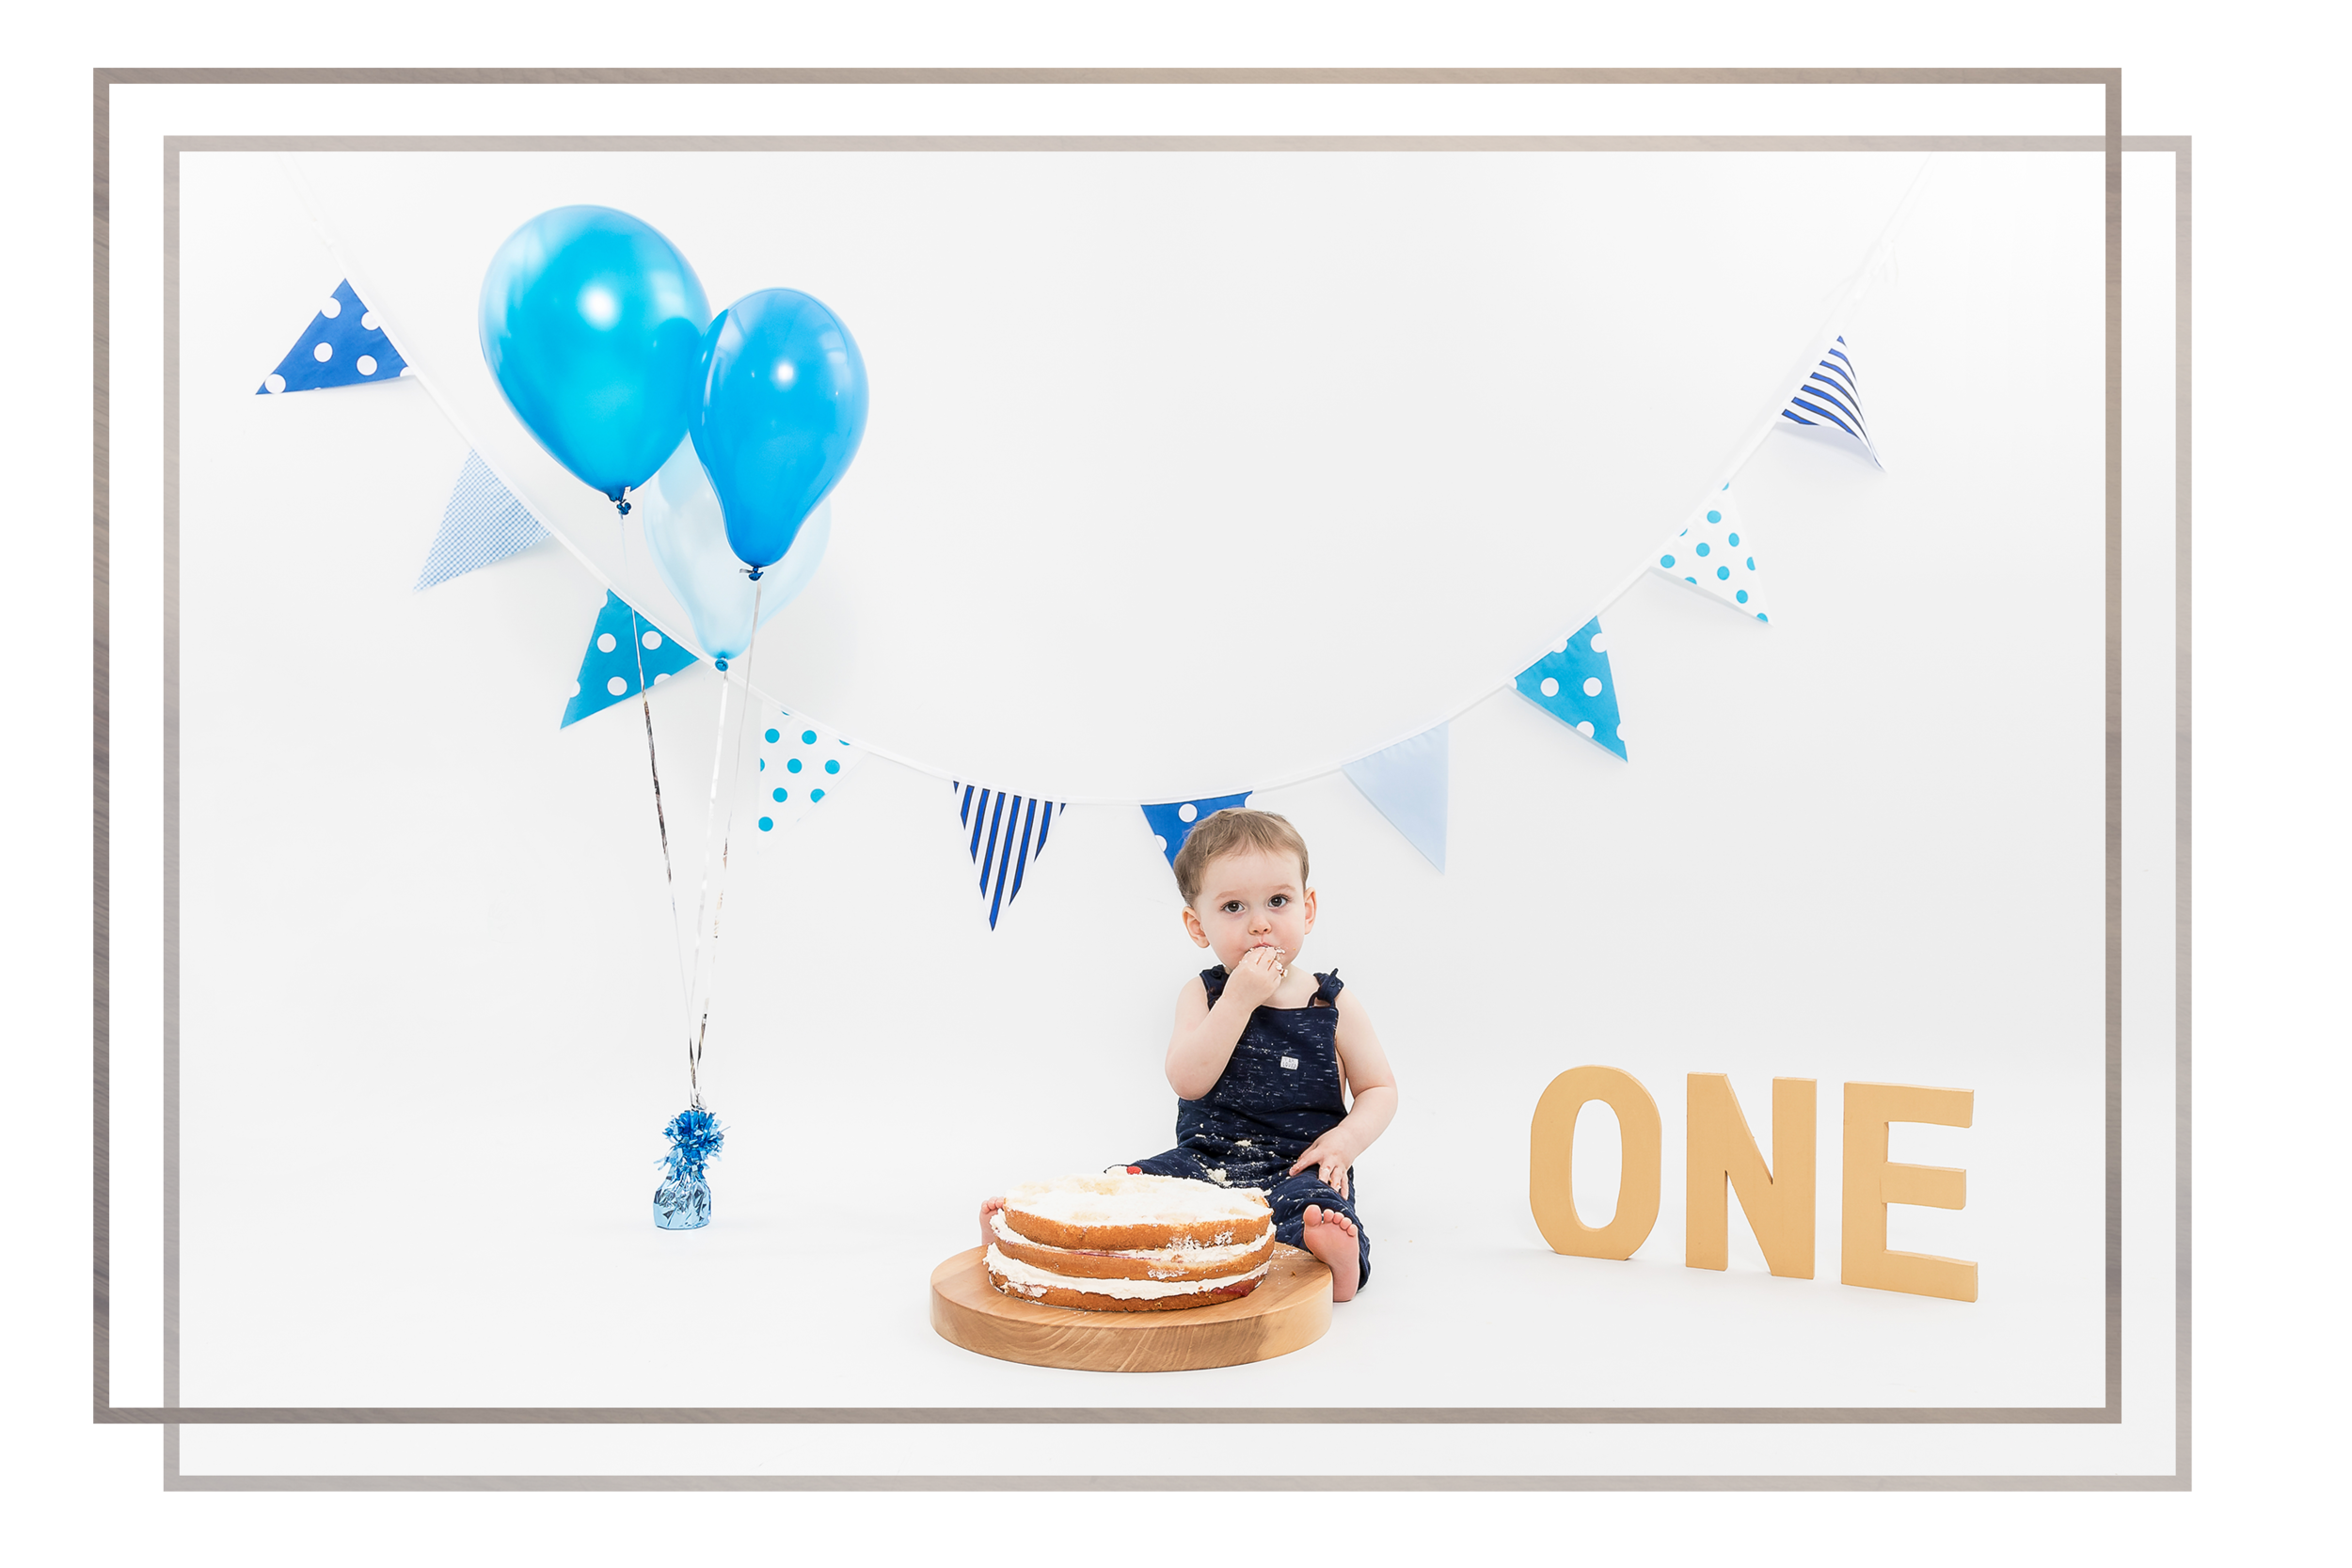 CAKESMASH sessions - To mark your little one's first birthday celebrate their milestone with some crazy cake smash fun! Sessions also include a short portrait session with siblings welcome.